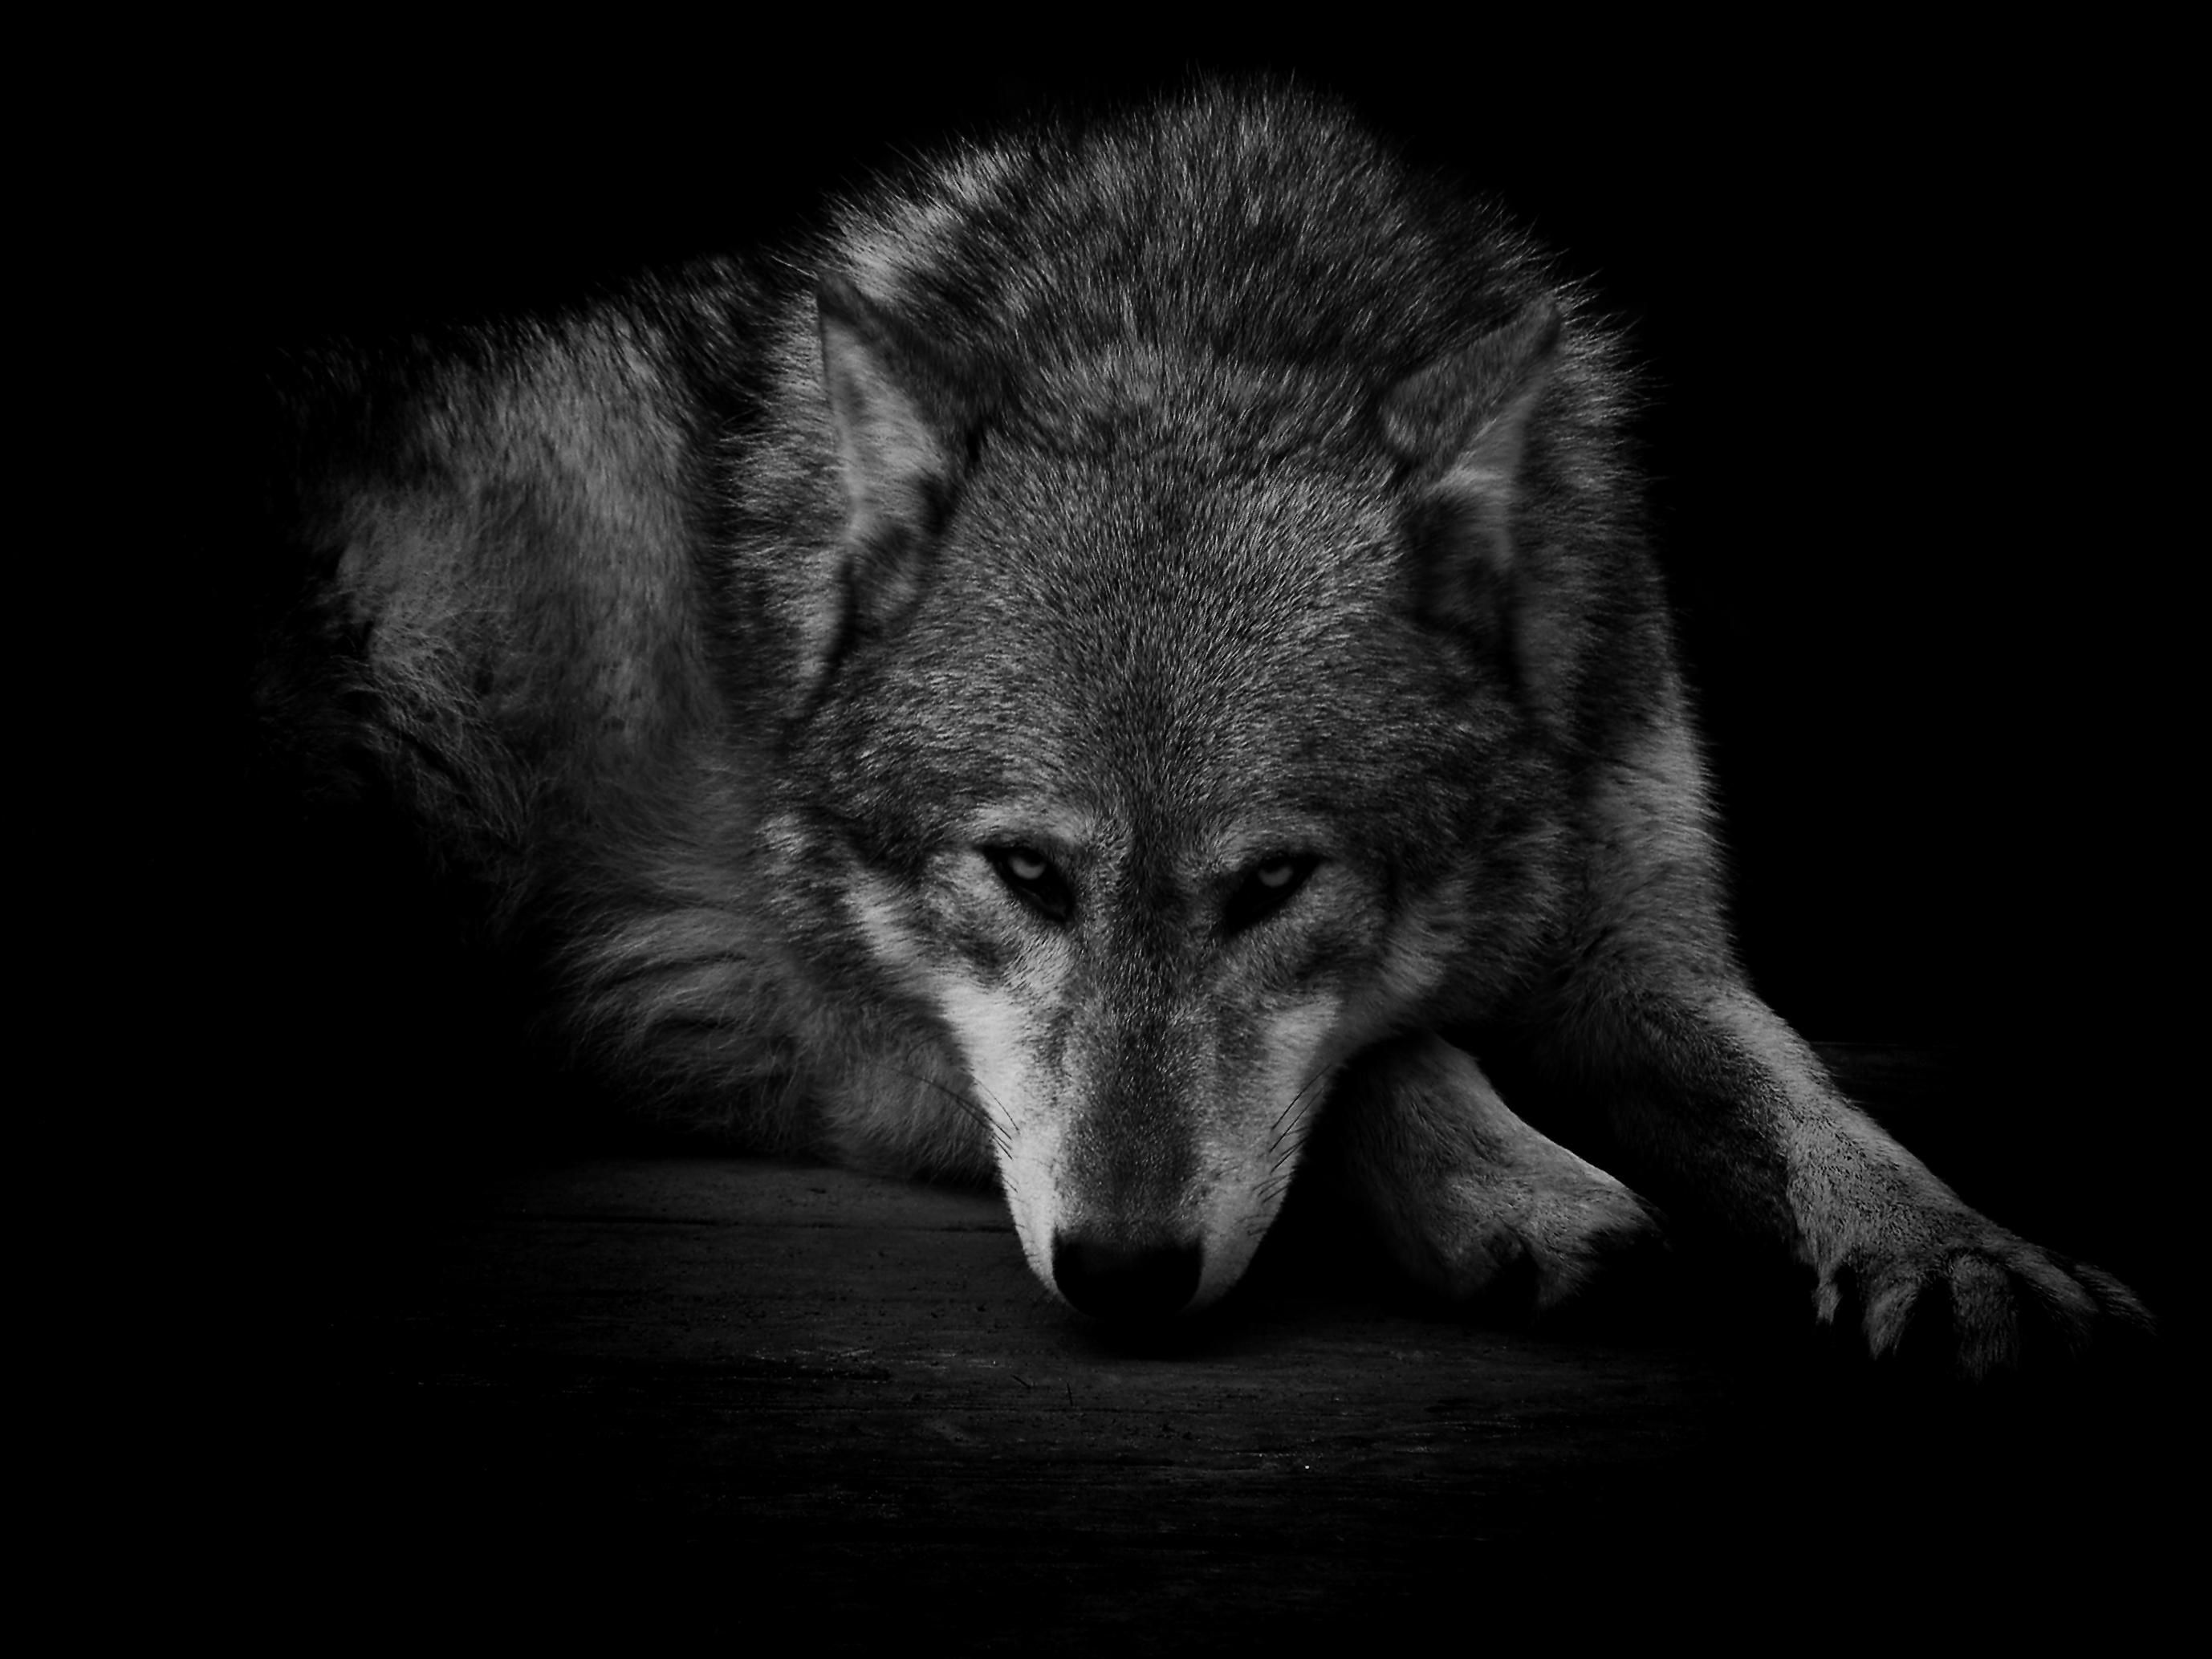 Lone Black Wolf Wallpapers Top Free Lone Black Wolf Backgrounds Wallpaperaccess